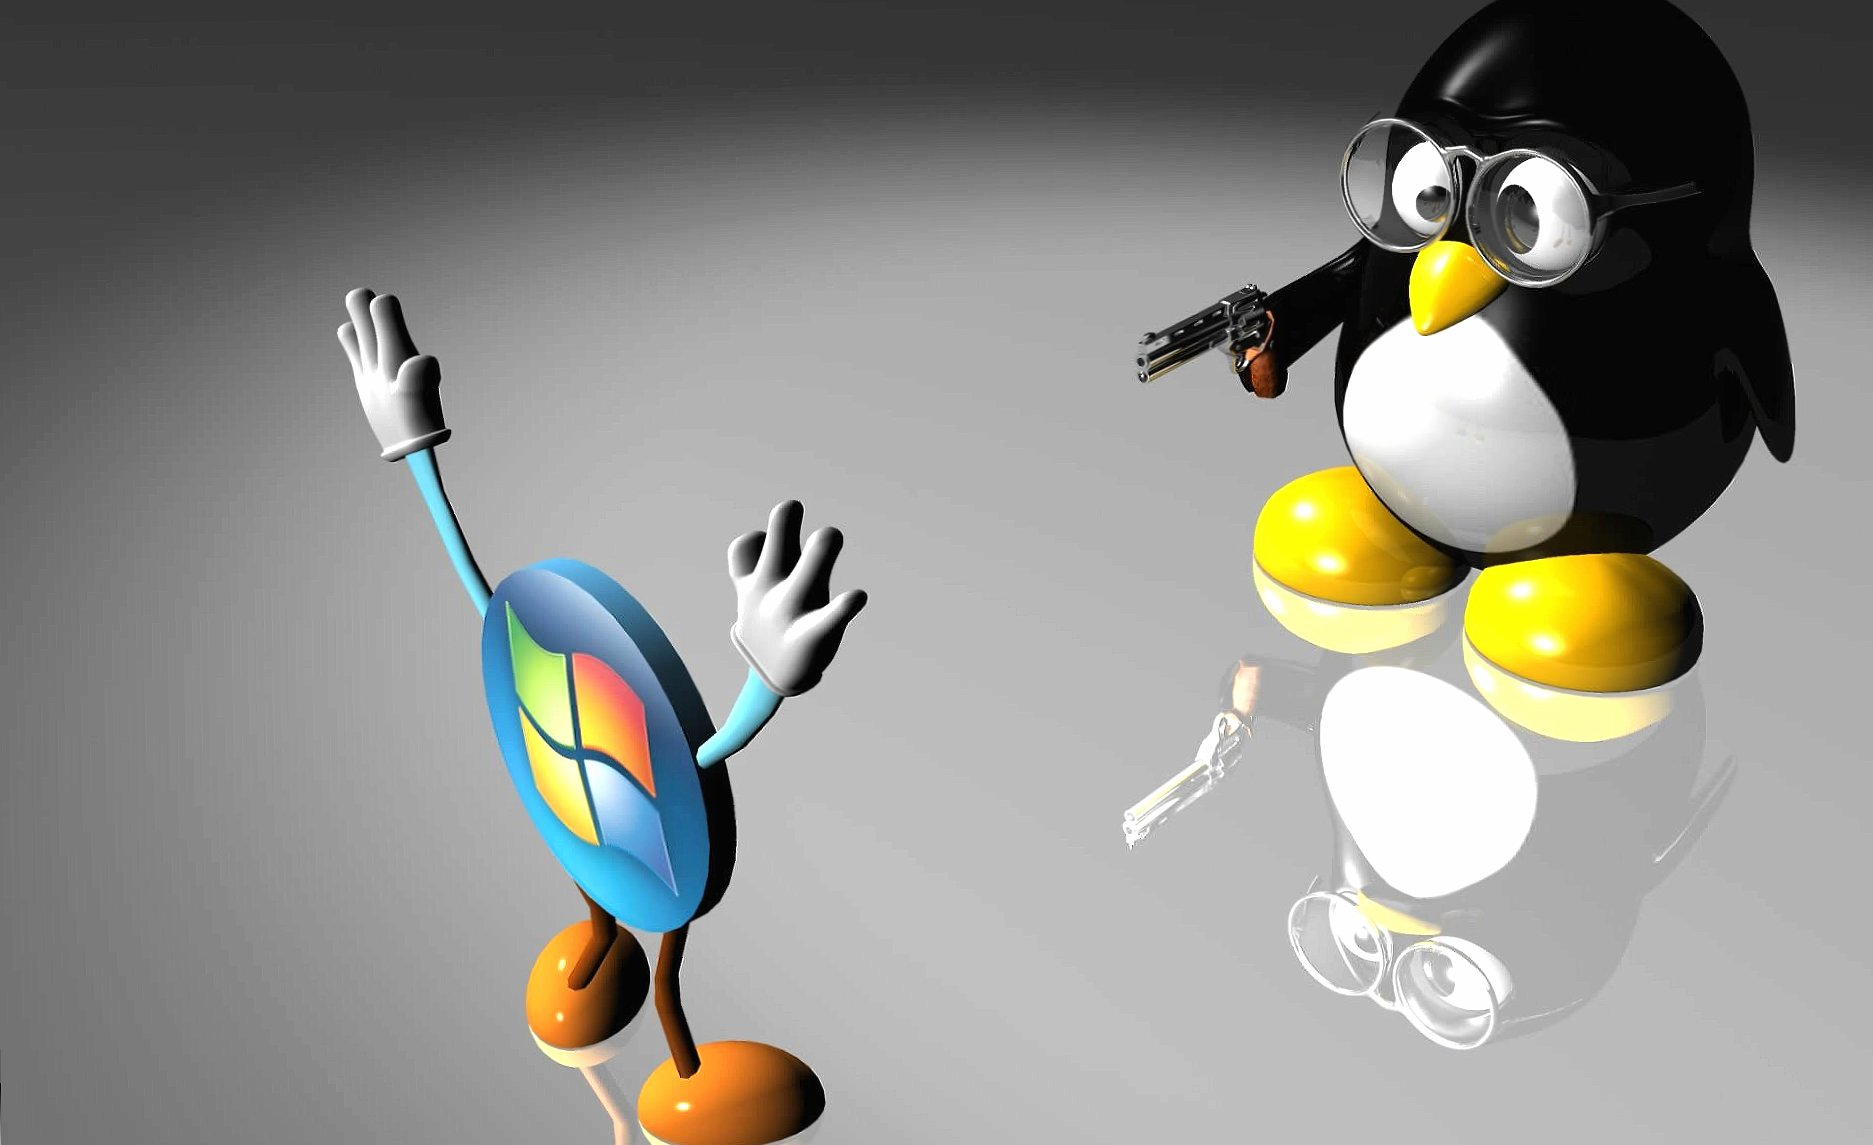 Linux vs windows wallpapers HD quality